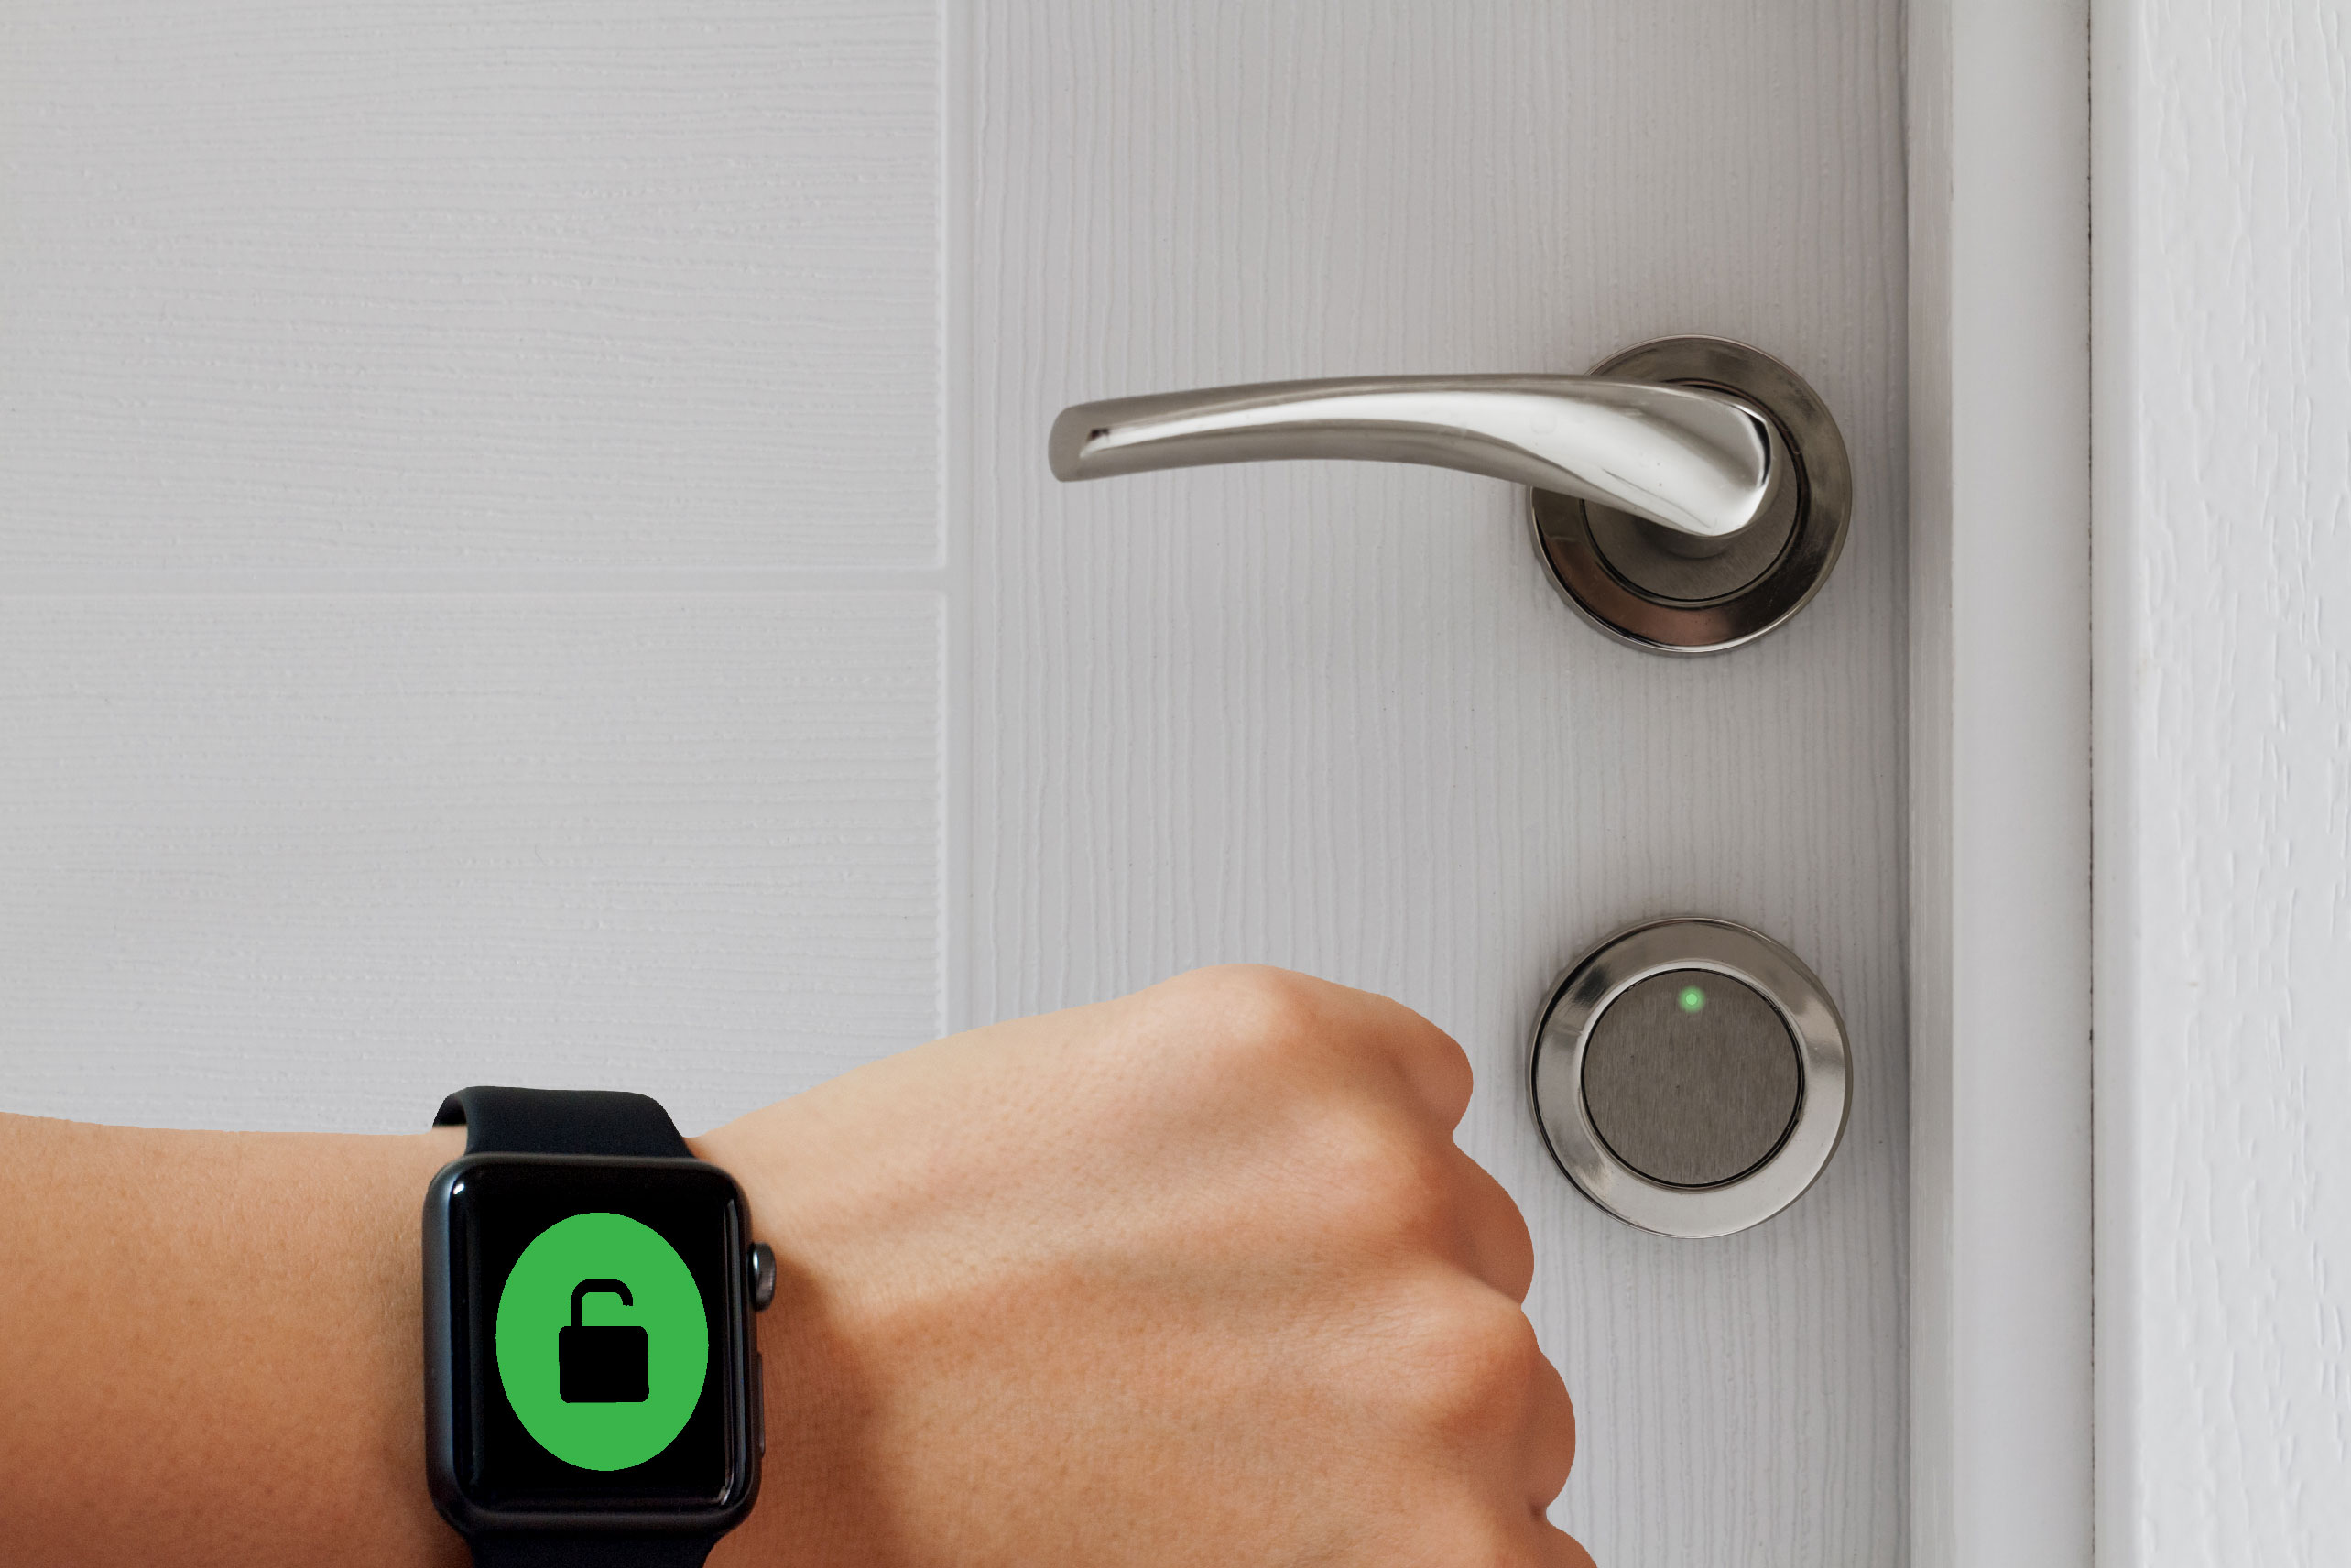 watch-home-door-unlock